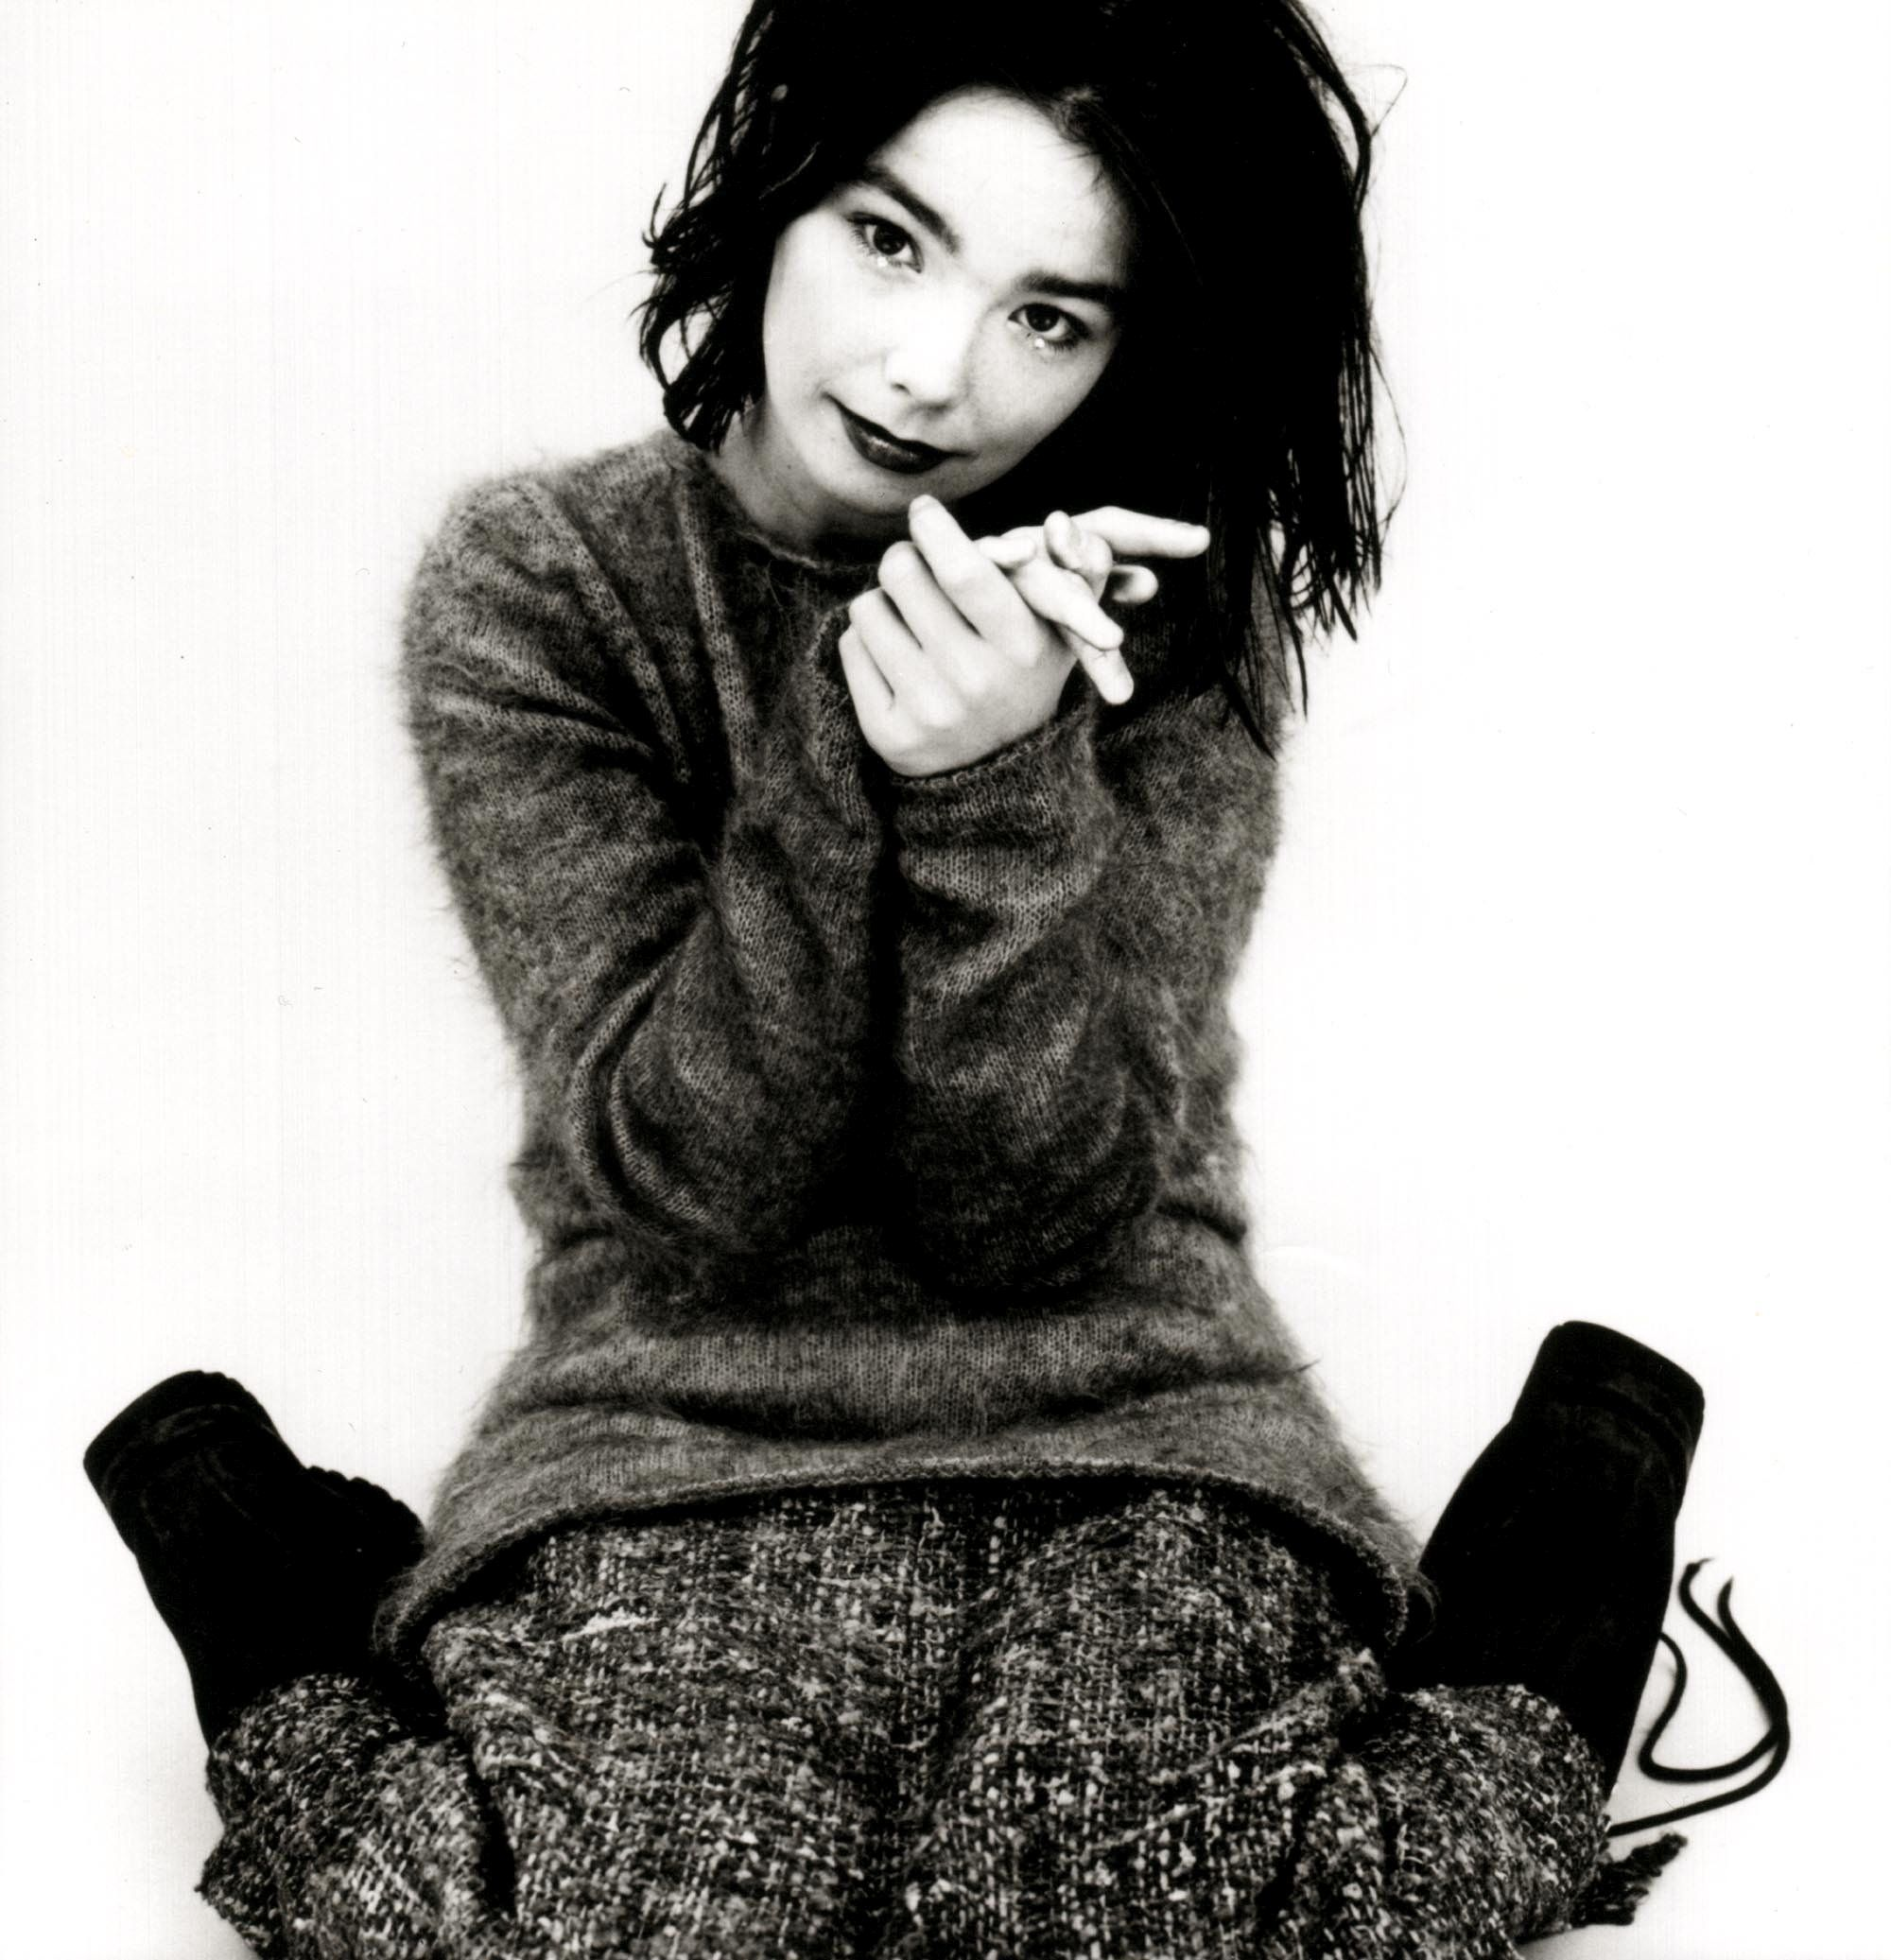 Pin By Jessica Cullen On Mostly Bjrk Bjork Debut Album Music Telephone Line Wiring Group Picture Image Tag Keywordpictures In 1993